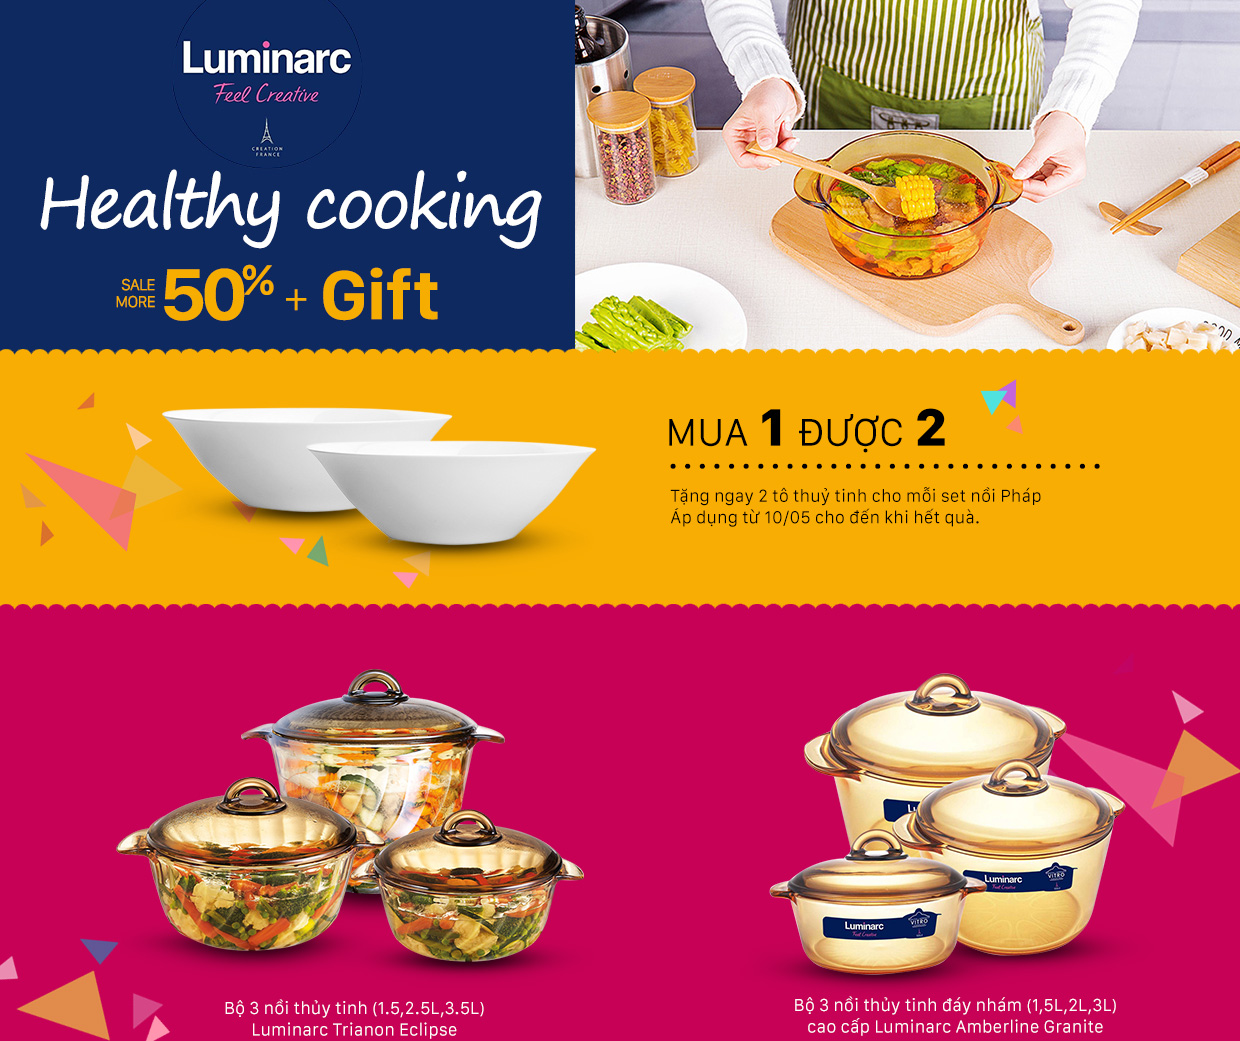 Heathy cooking - Luminarc: Sale 50% kèm quà